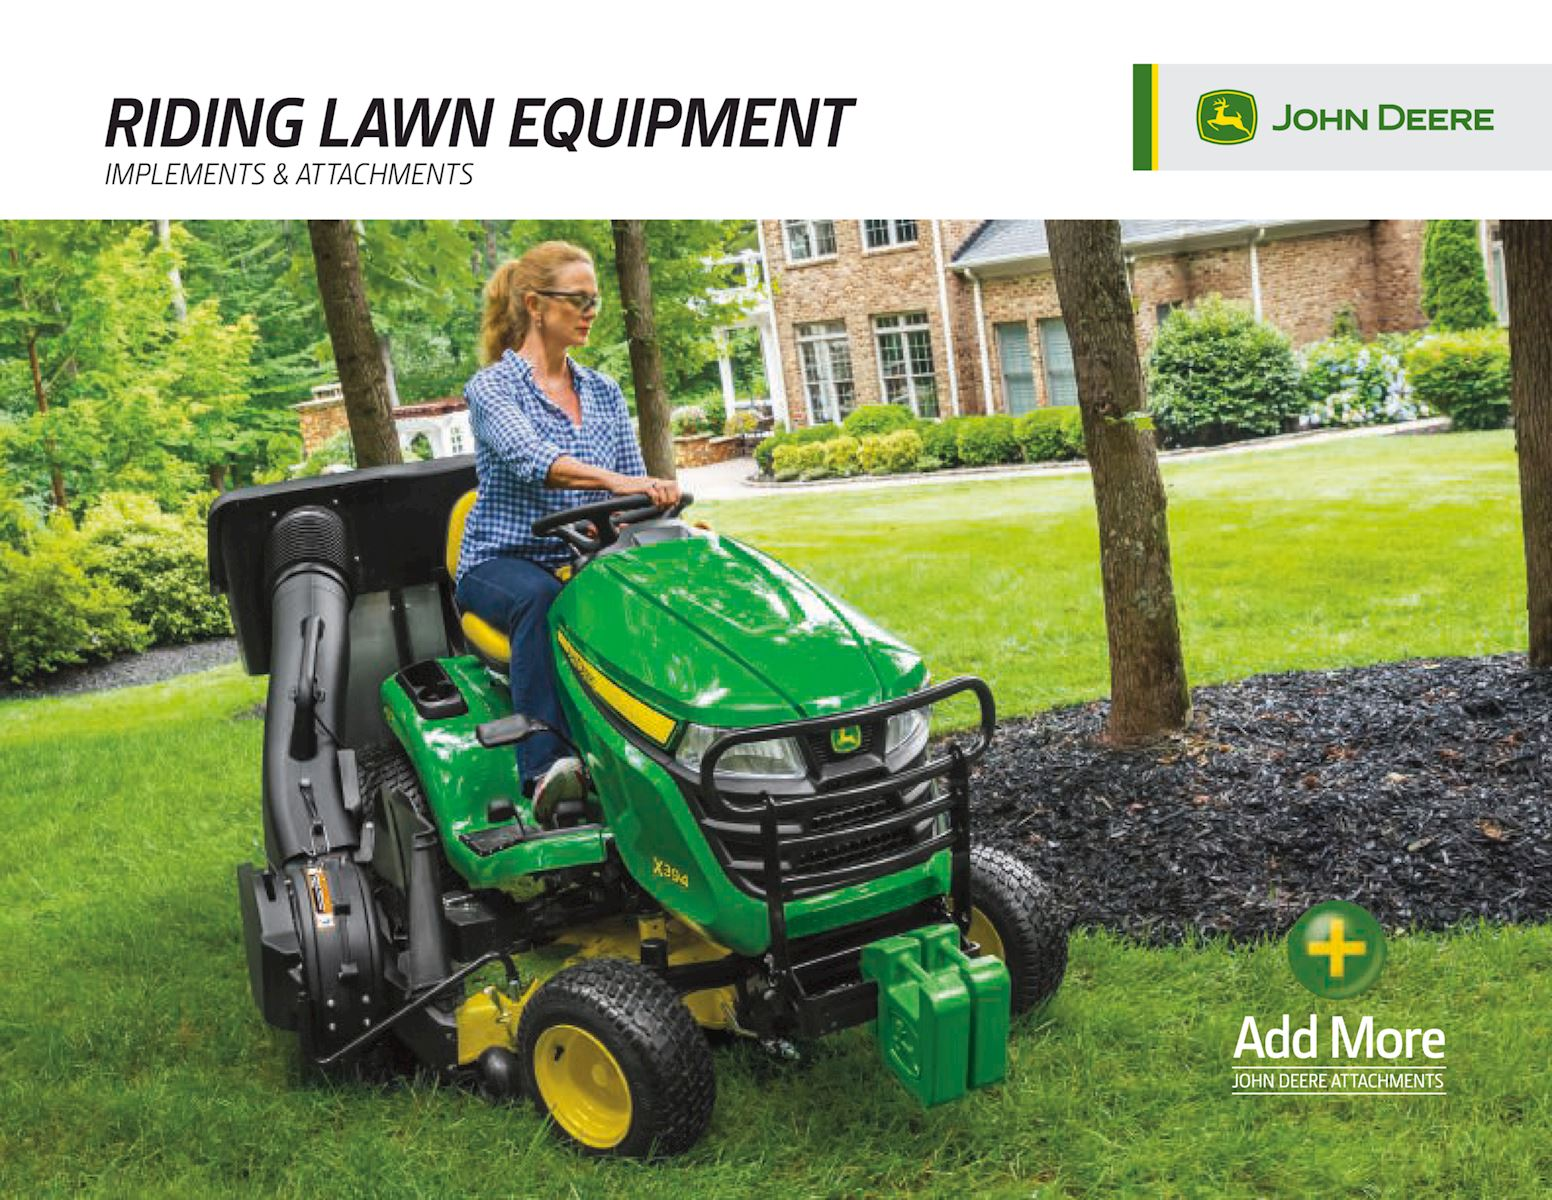 Riding Lawn Equipment Attachments, Accessories and Implements